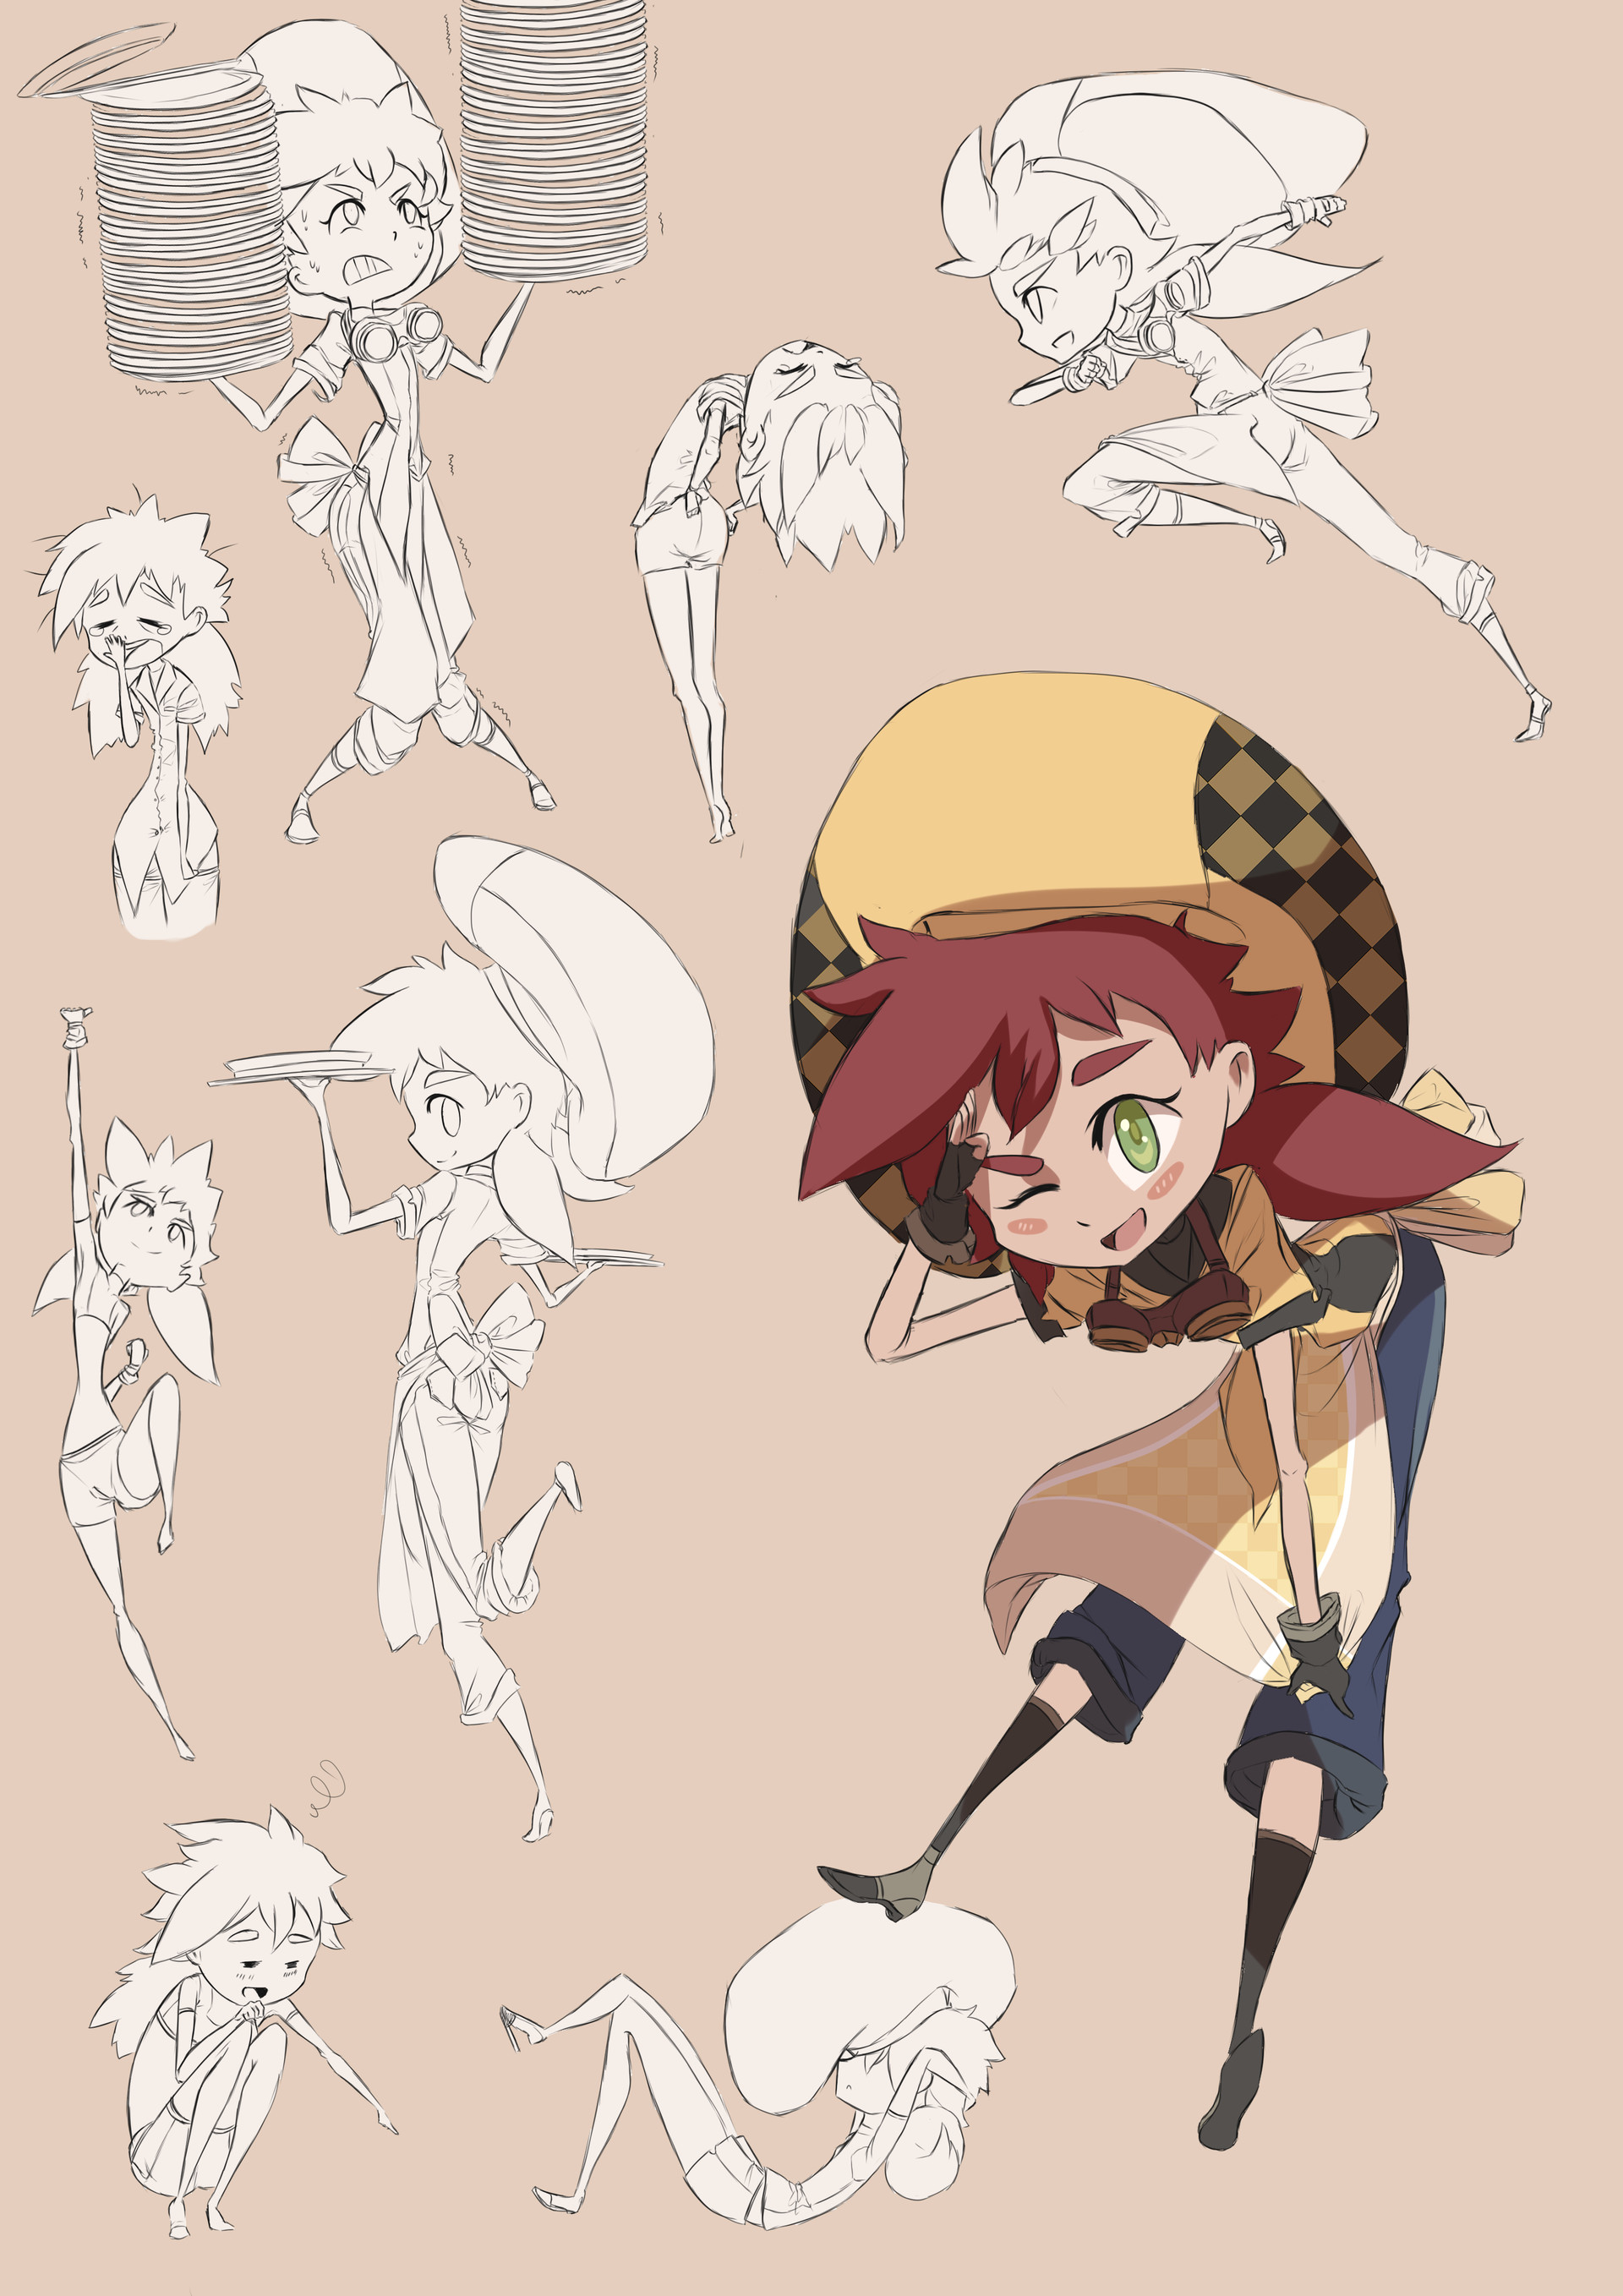 Bach do university work character design marie pose by dishwasher1910 daq8z6f